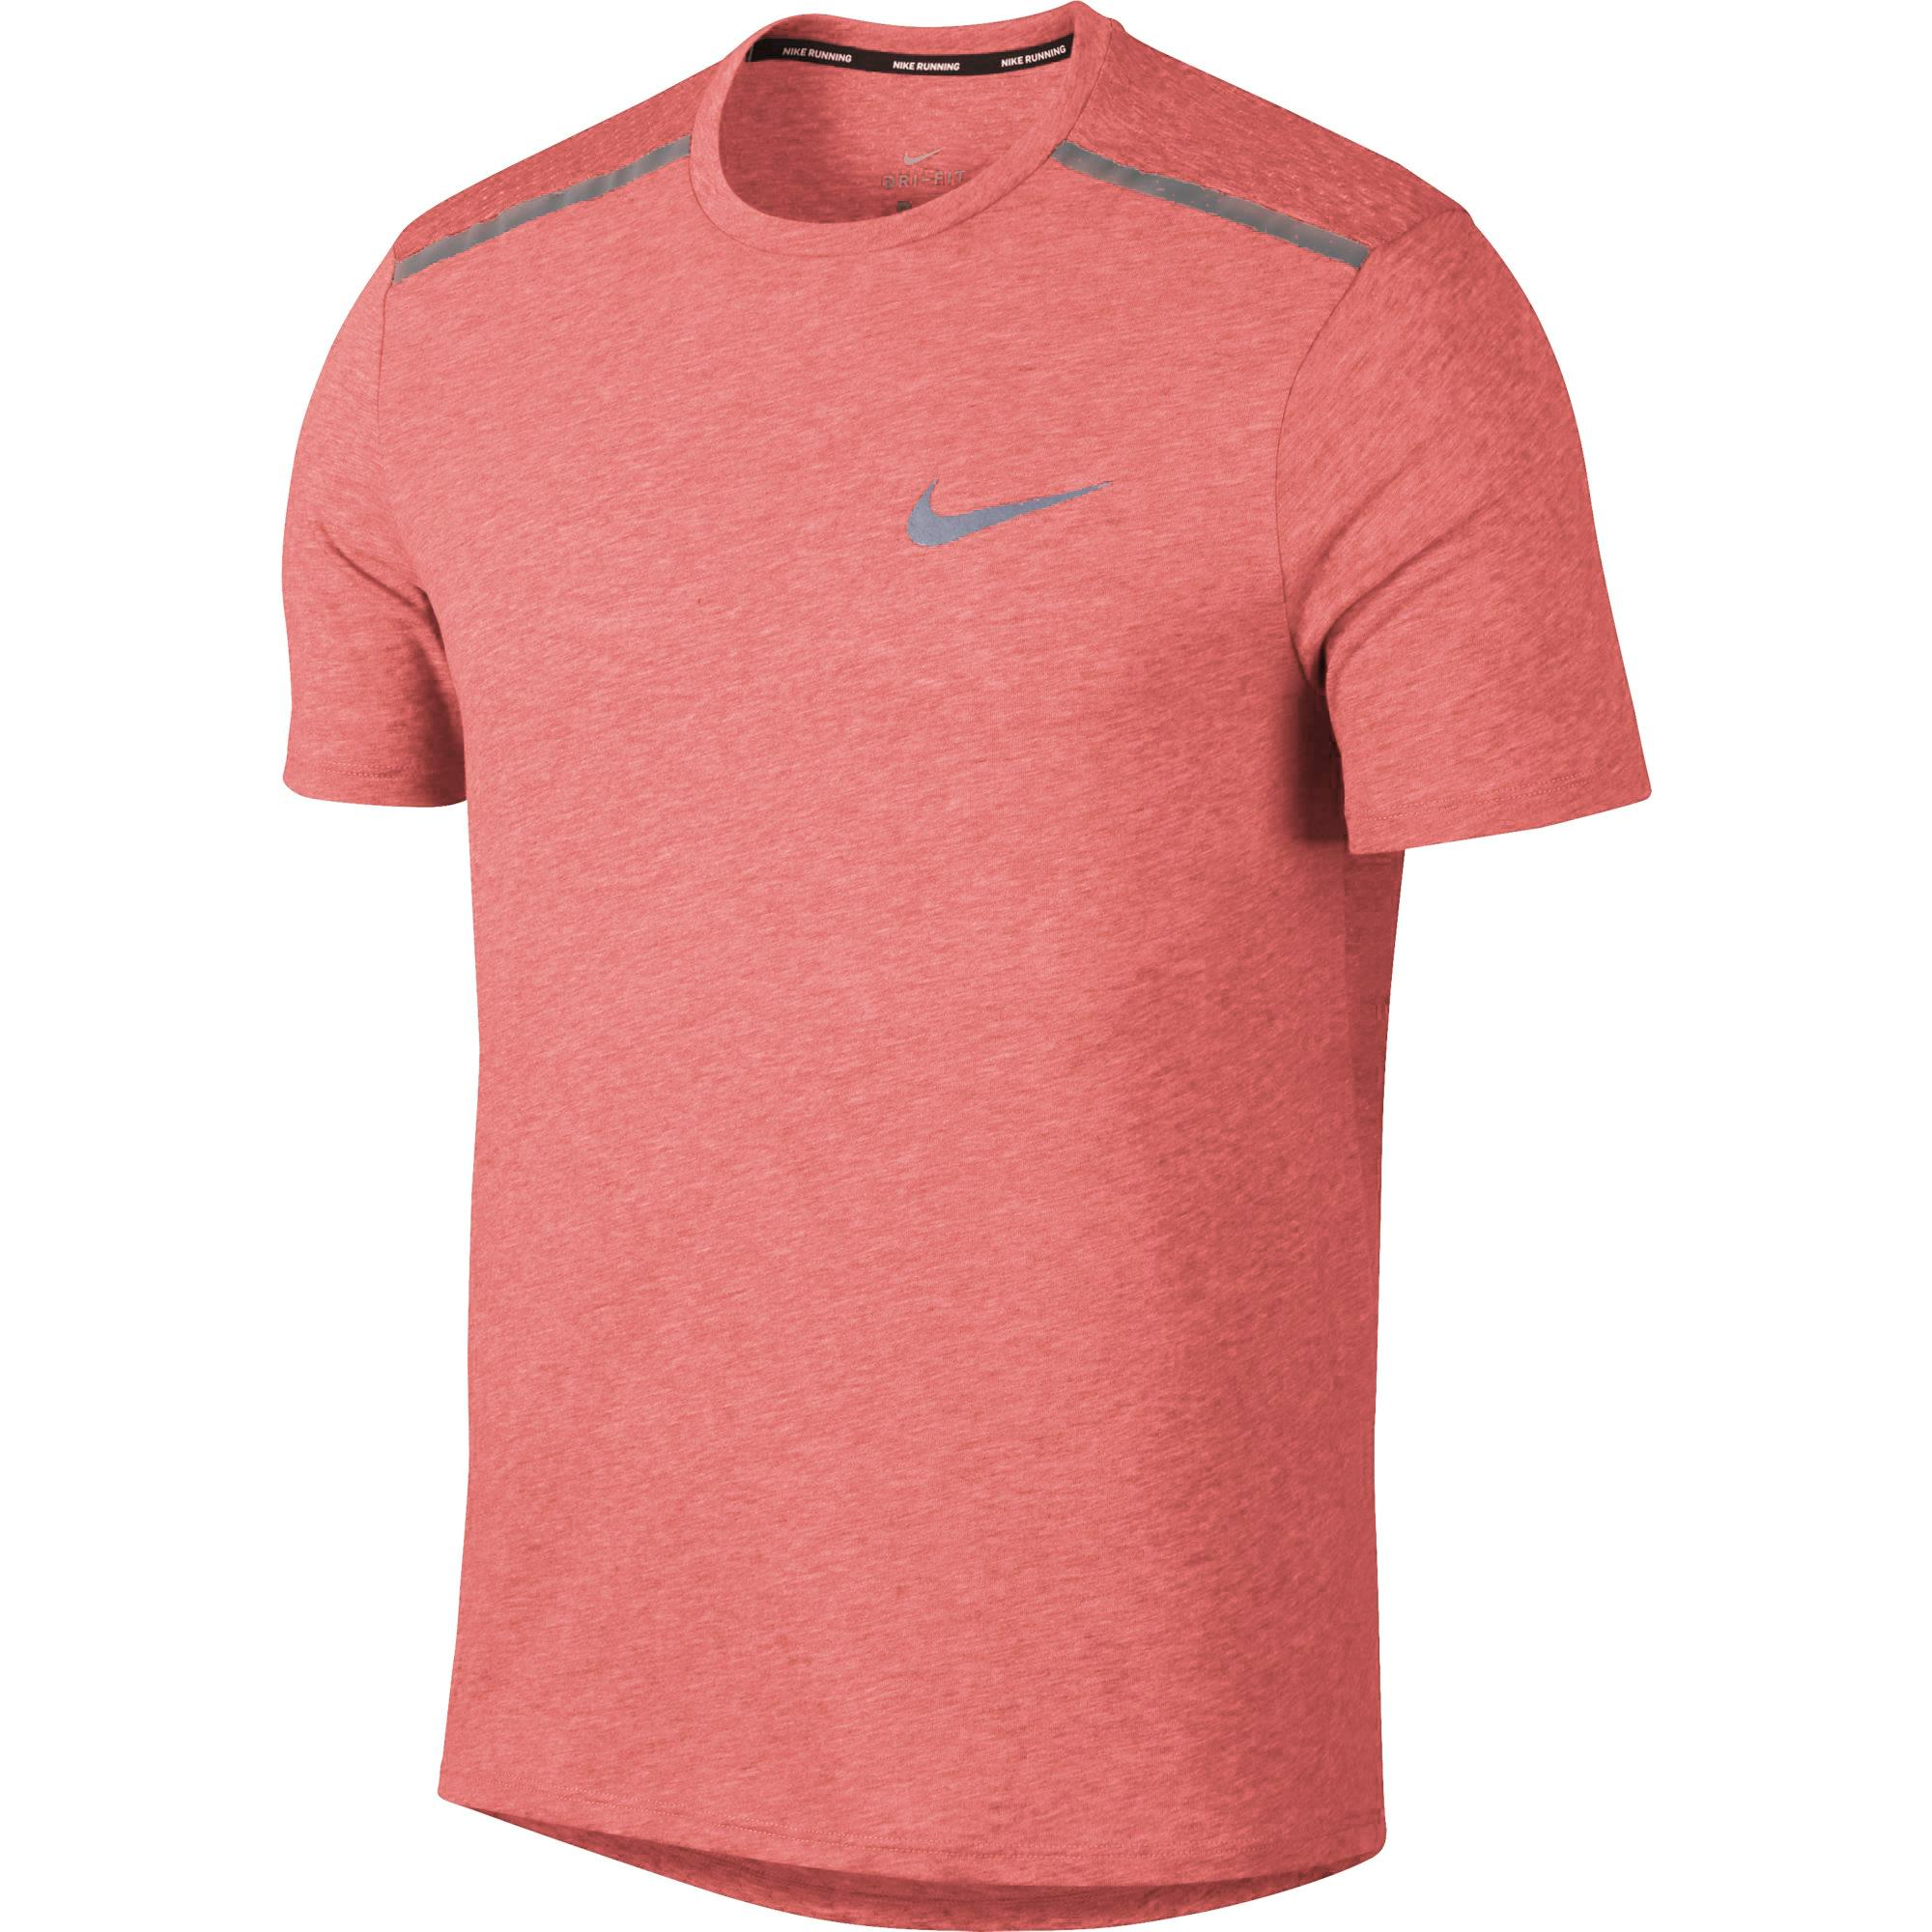 Nike T-shirt Dri-fit Rise 365